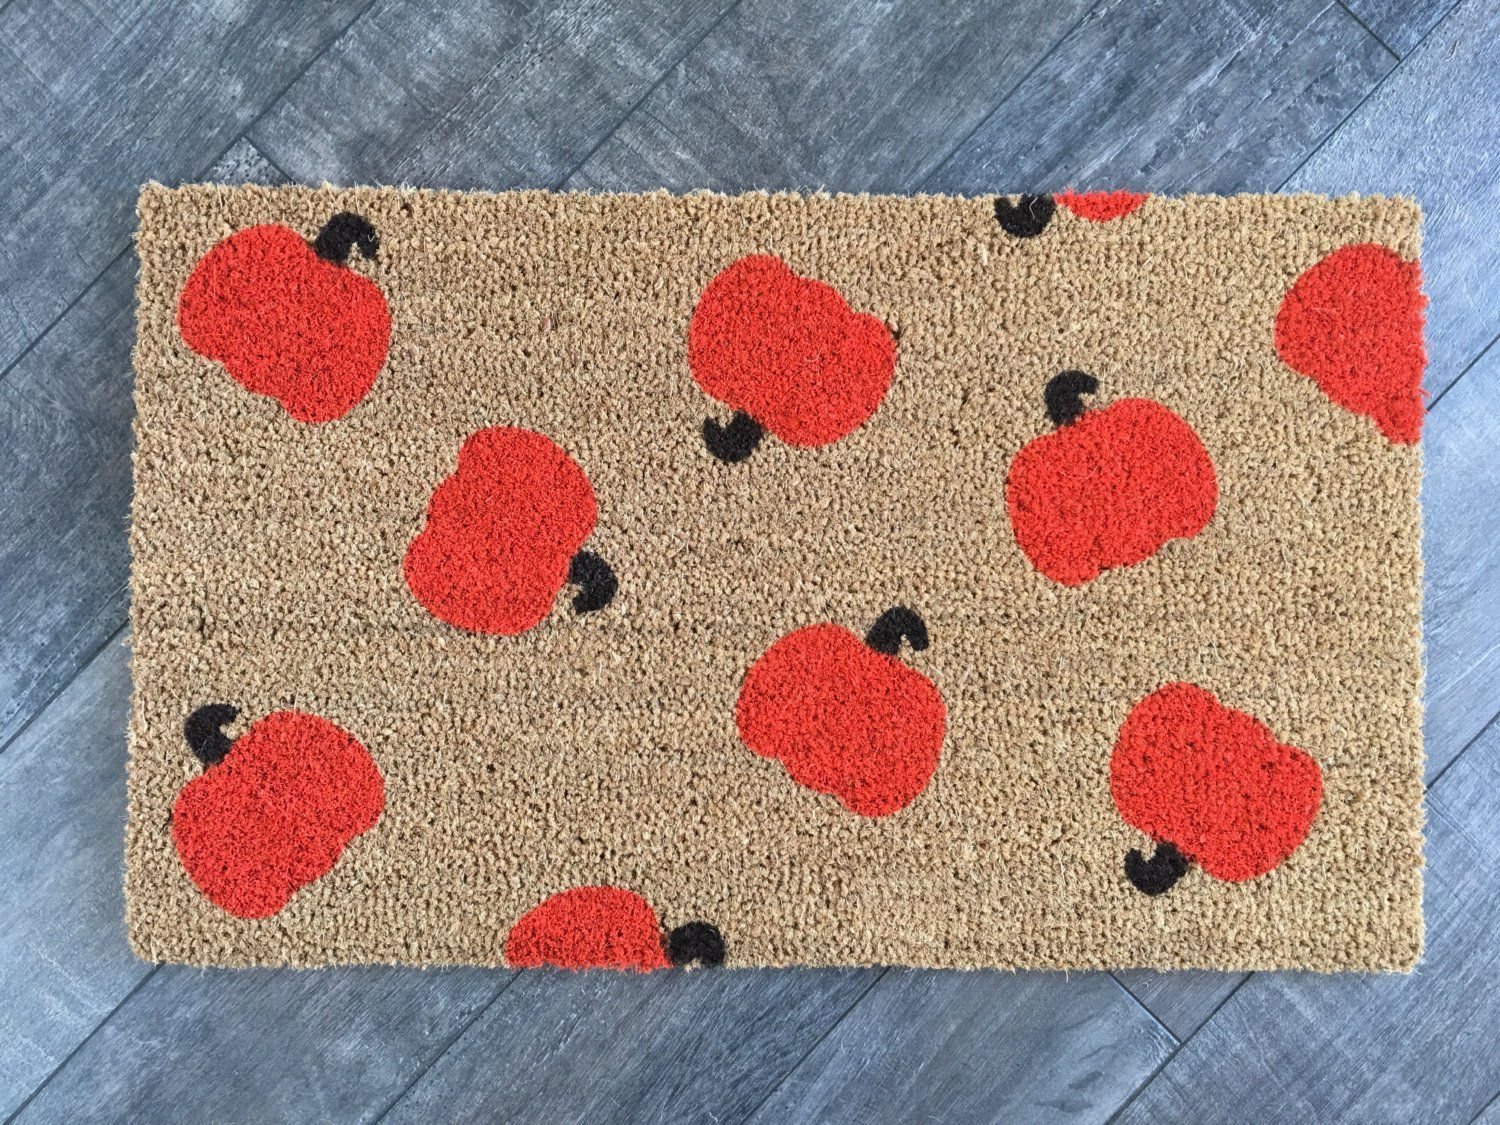 Pumpkin doormat doormat pumpkin doormat kristyandbryce Images